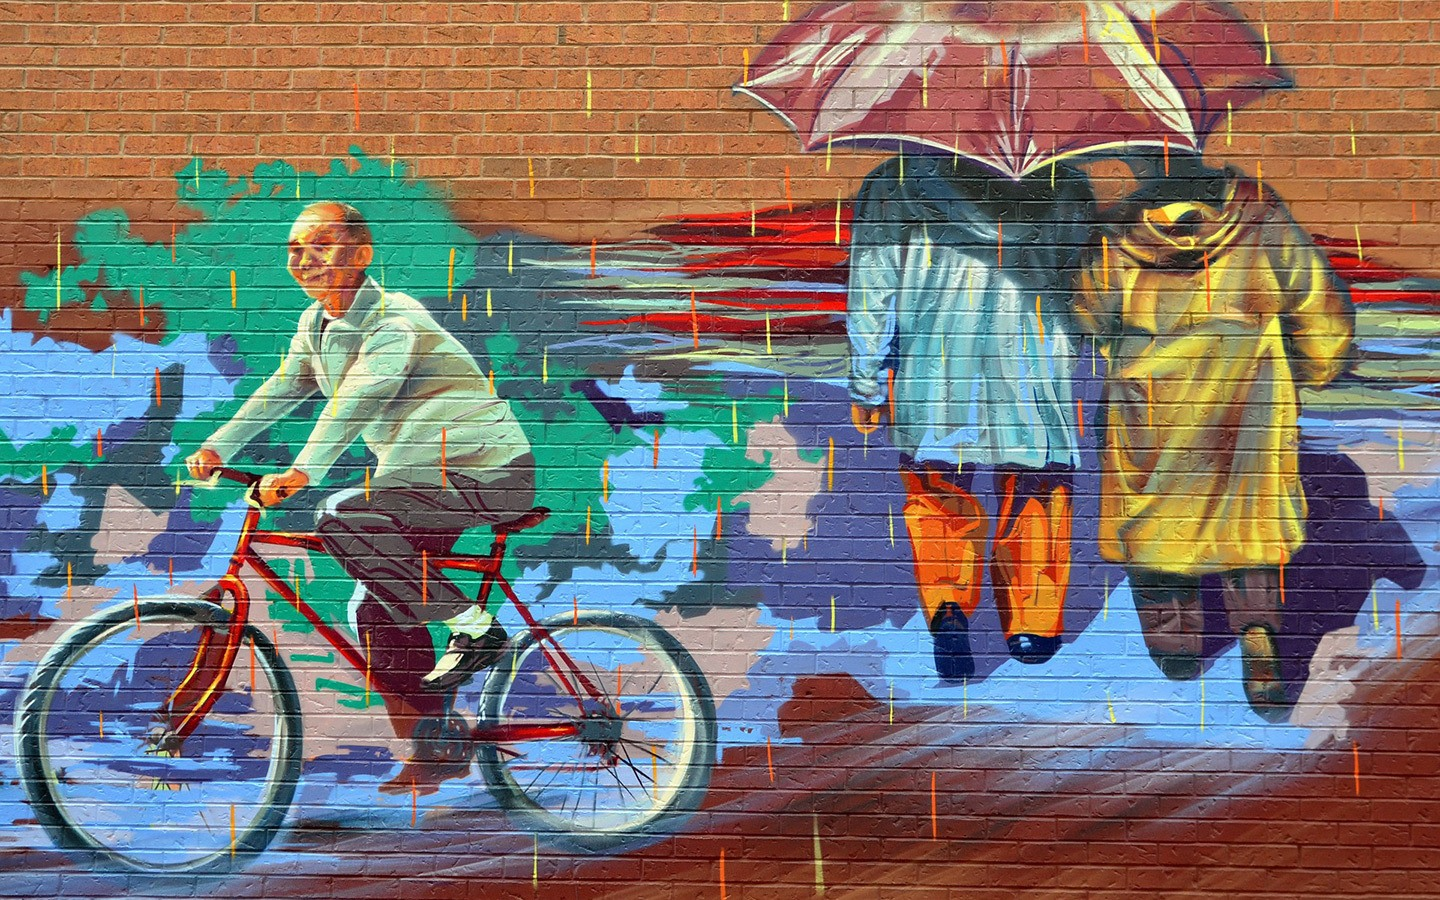 Mural in Chinatown showing a man riding a bicycle